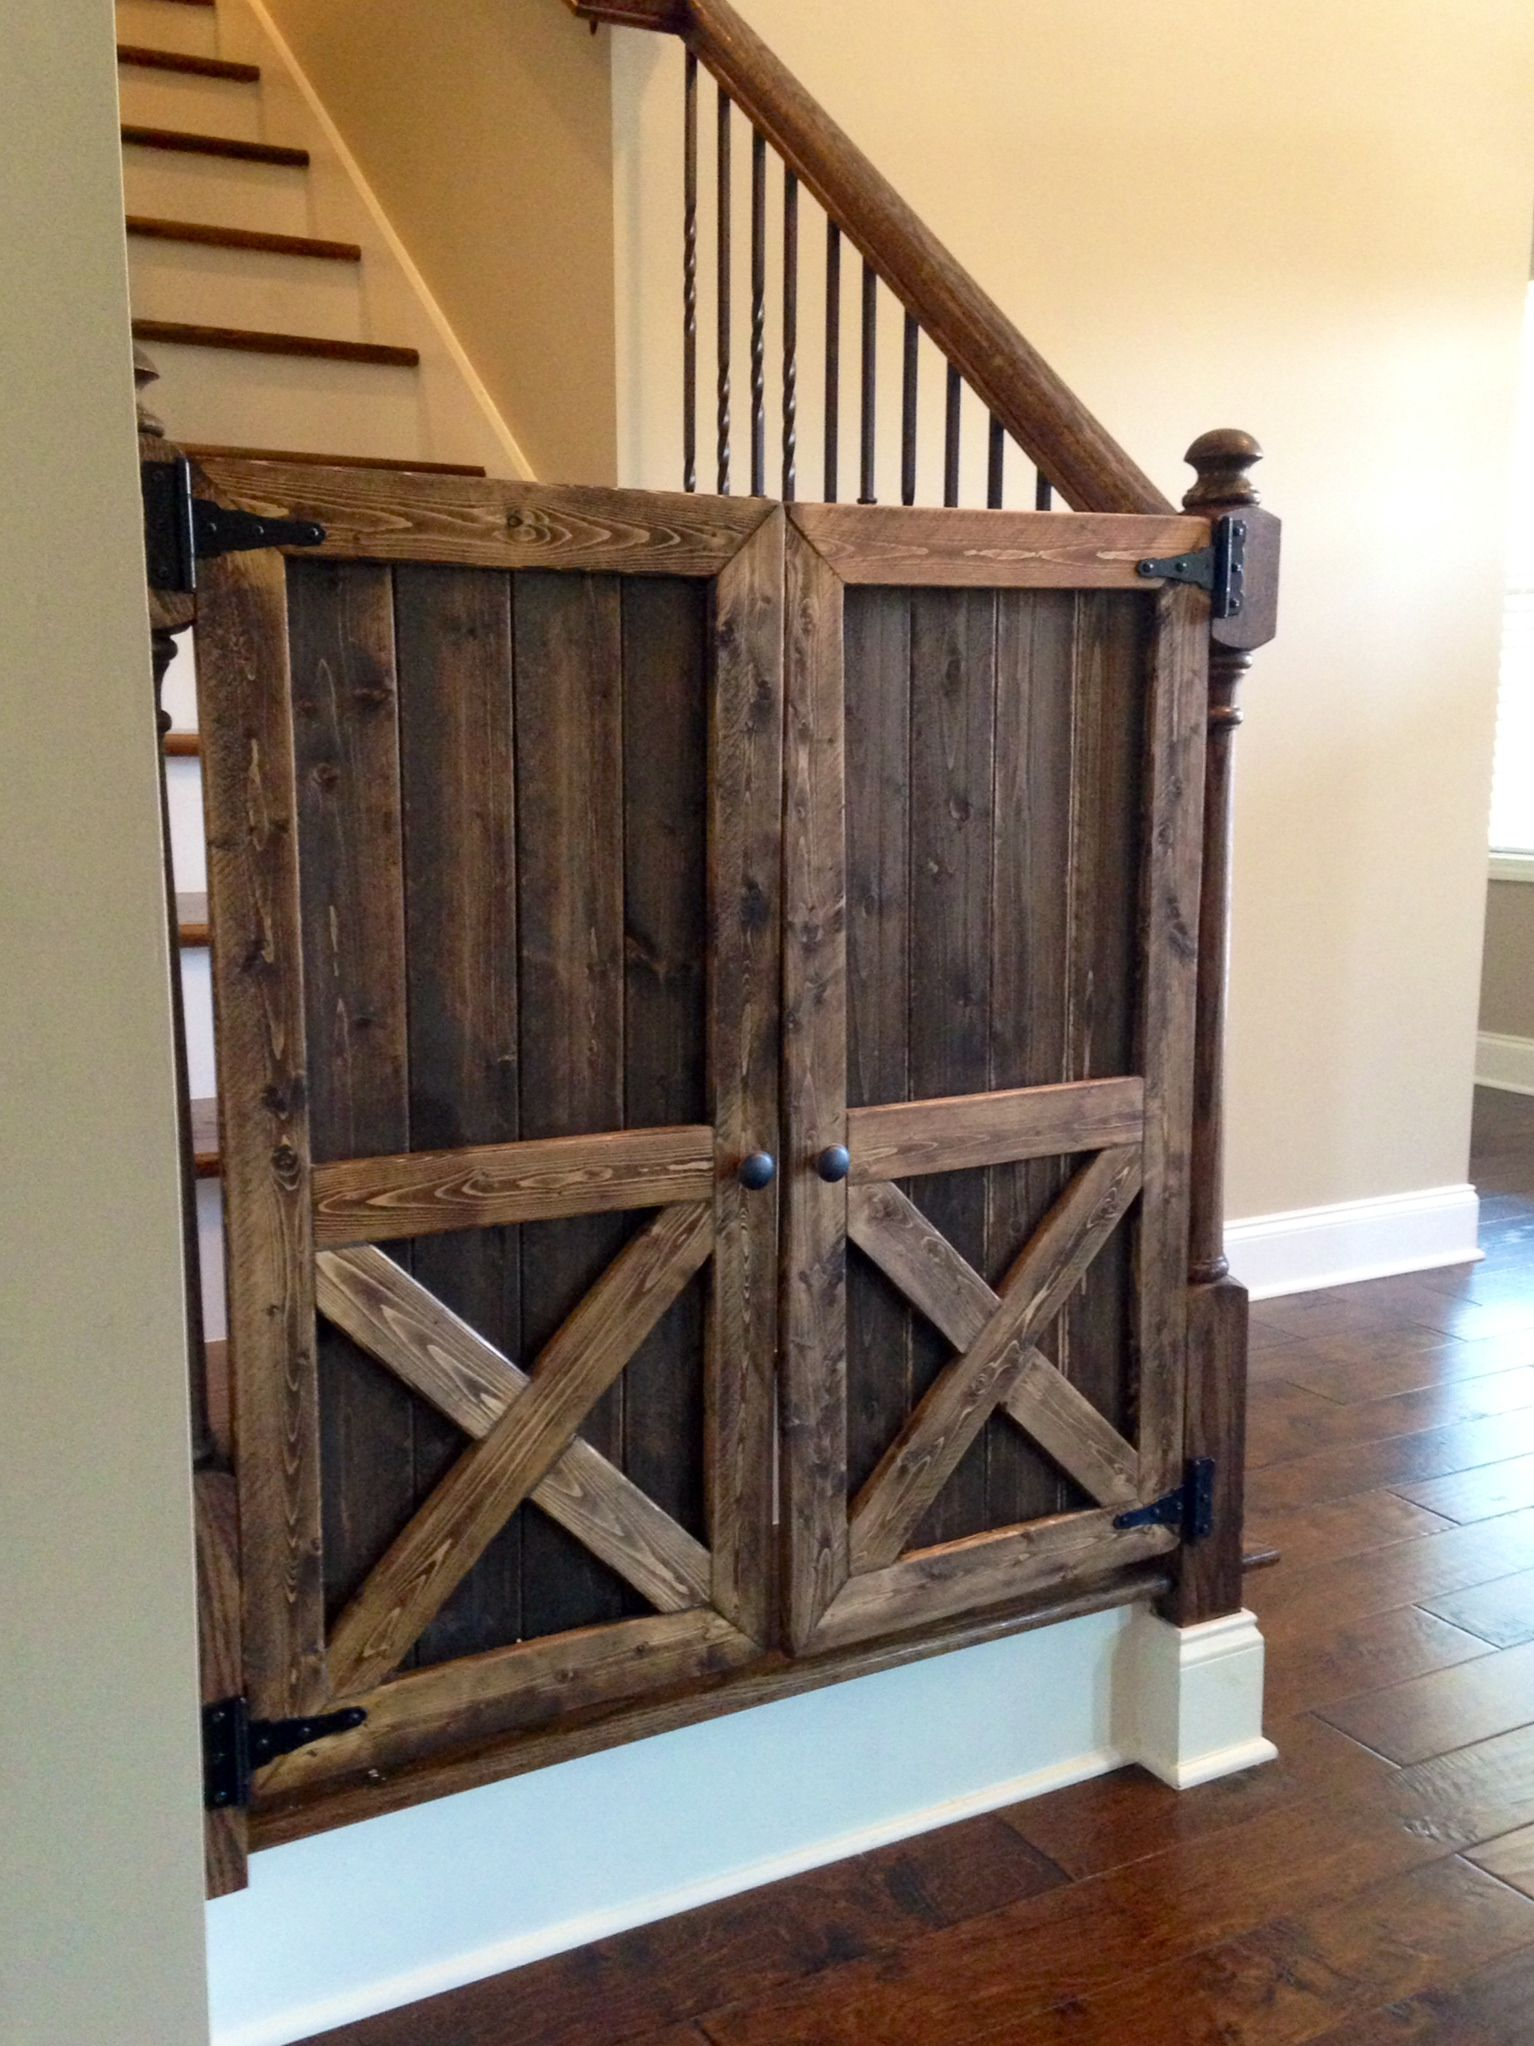 Barn Door Baby Gates Could Be A Beautiful Puppy Gate Also!